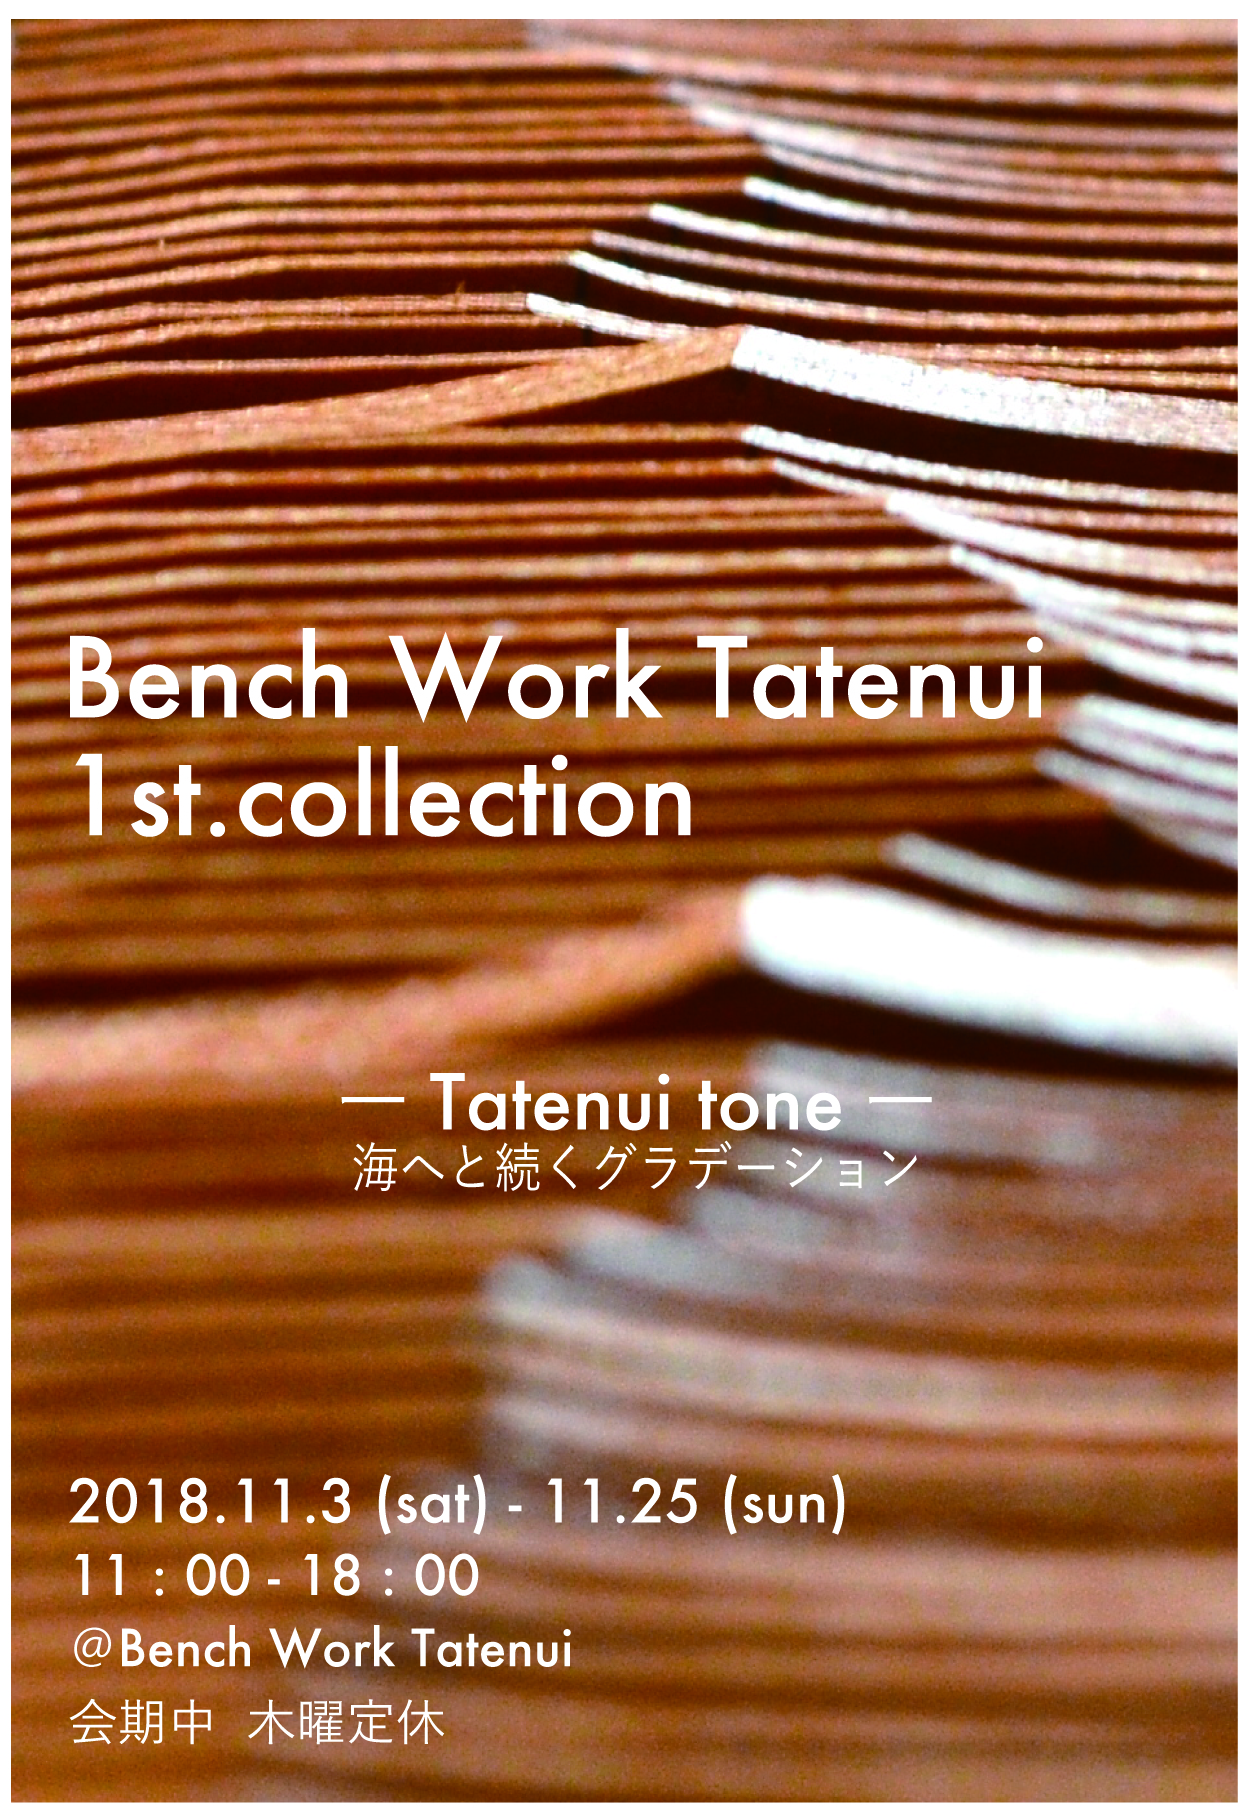 Bench Work Tatenui 1st.collection -Tatenui tone-海へと続くグラーデーション